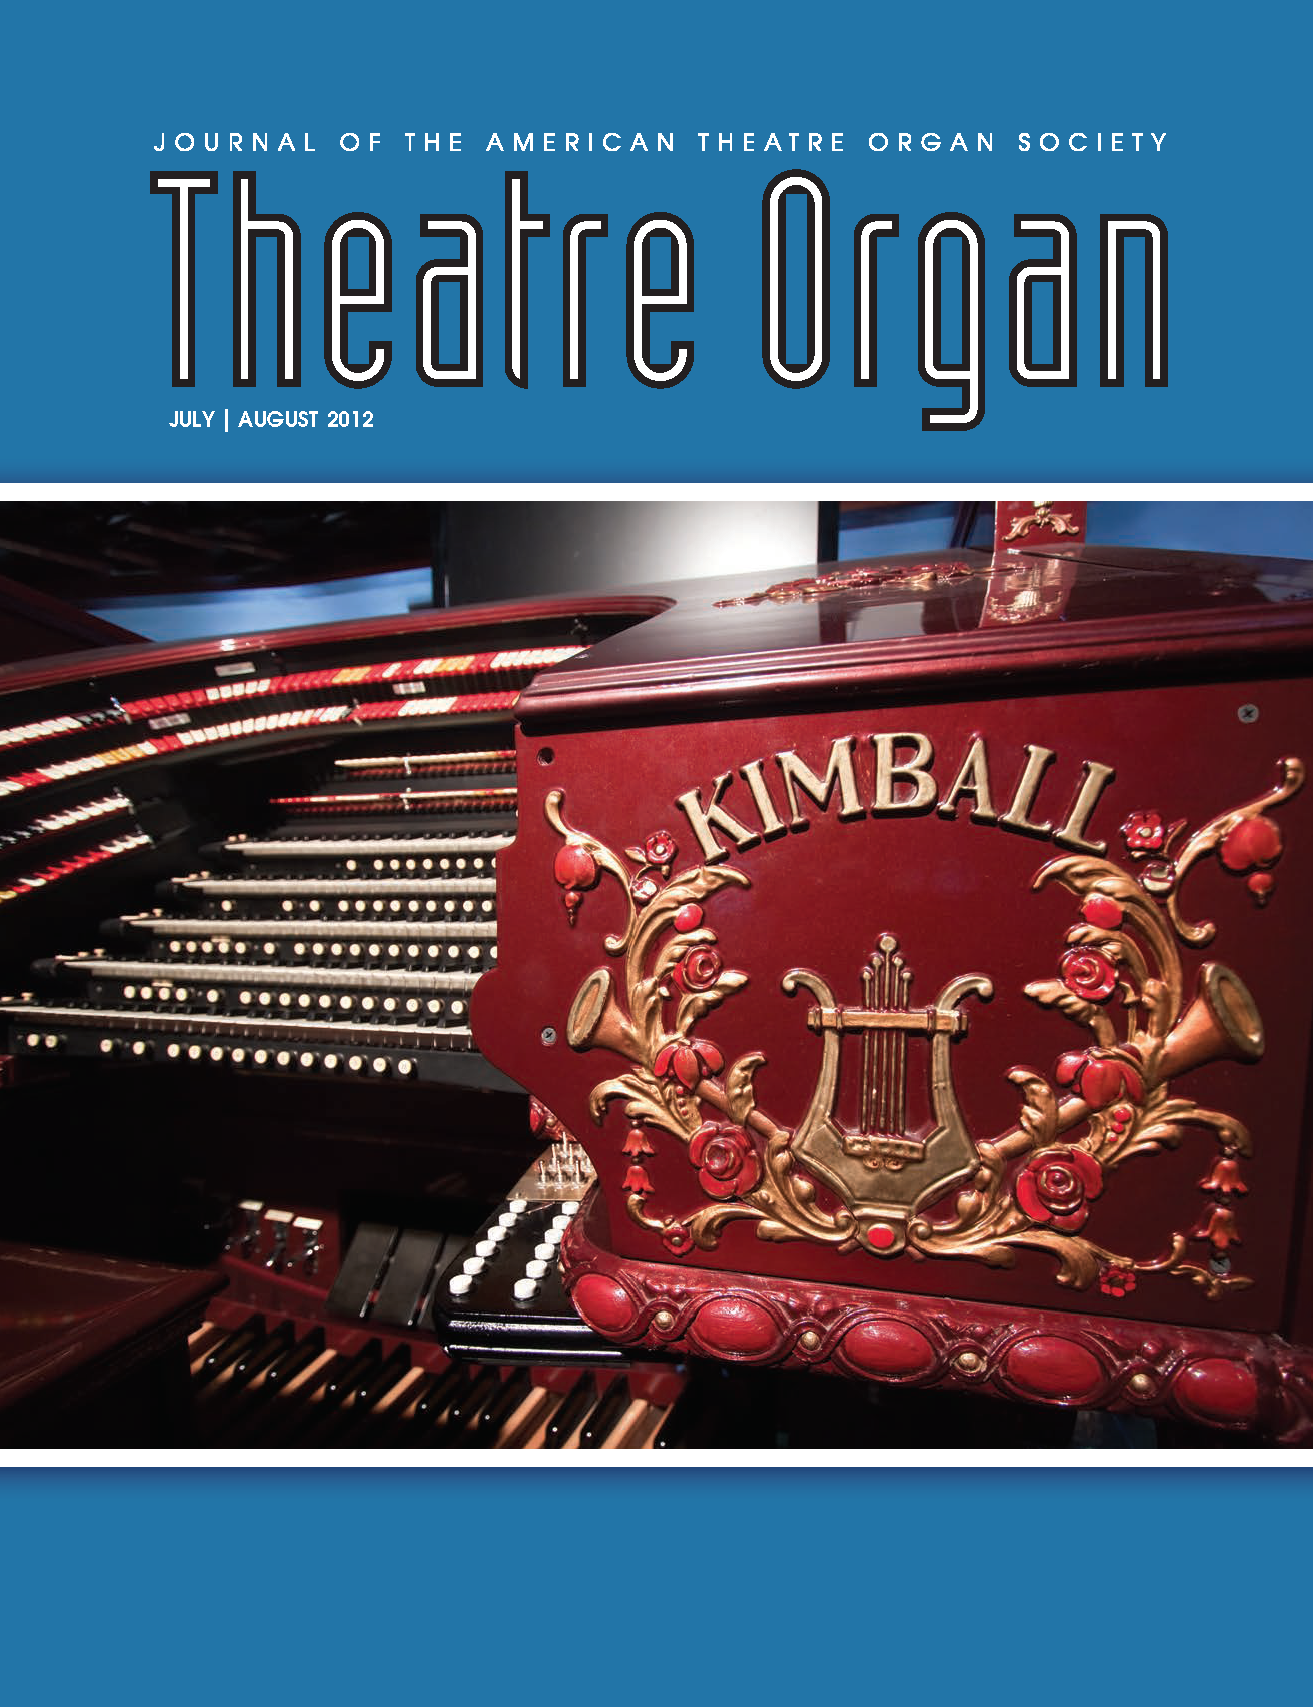 Theatre Organ, July - August 2012, Volume 54, Number 4